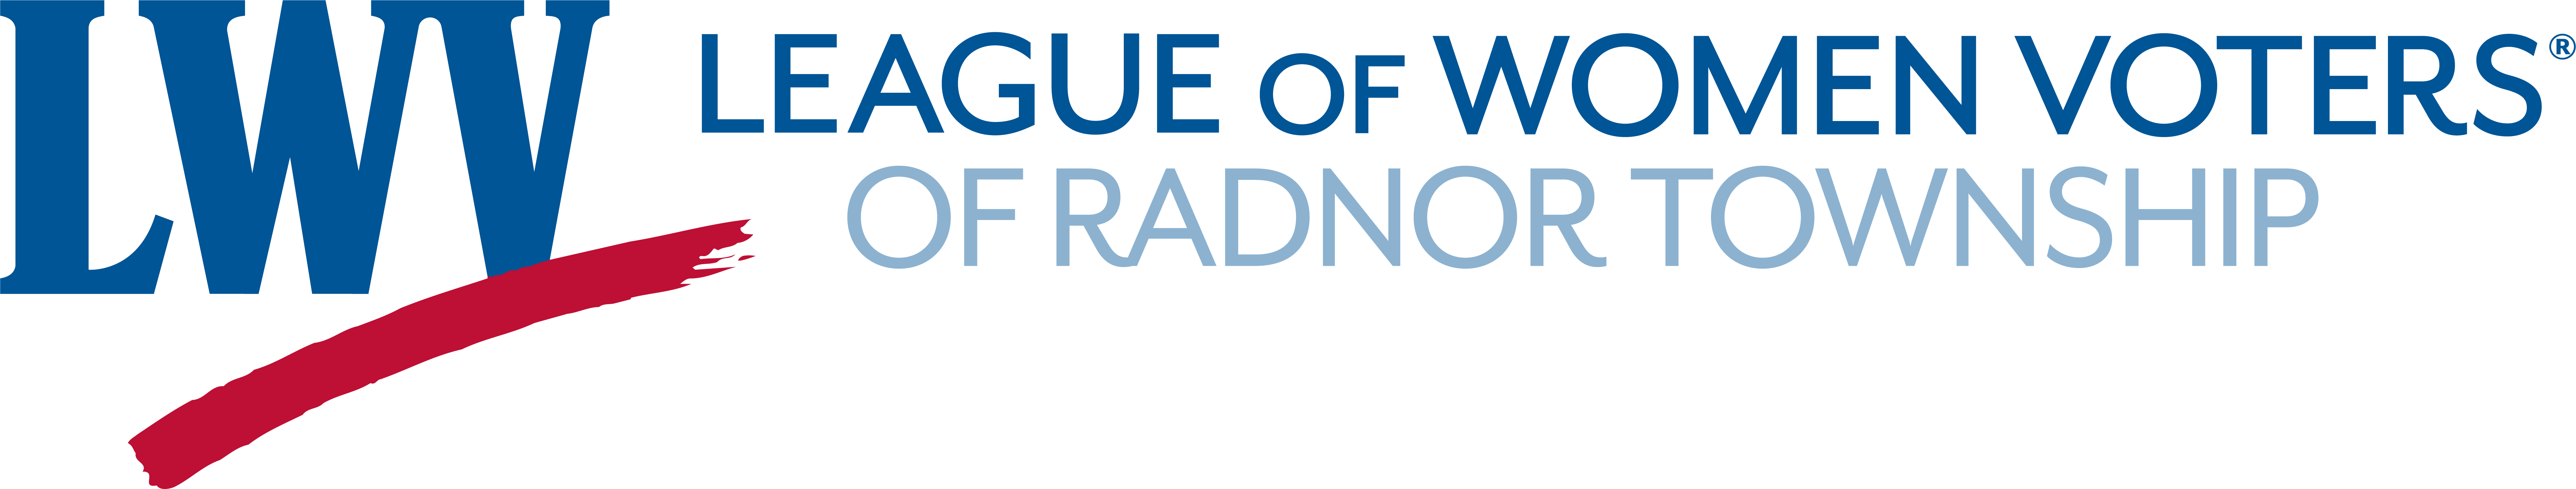 League of Women Voters of Radnor Township logo